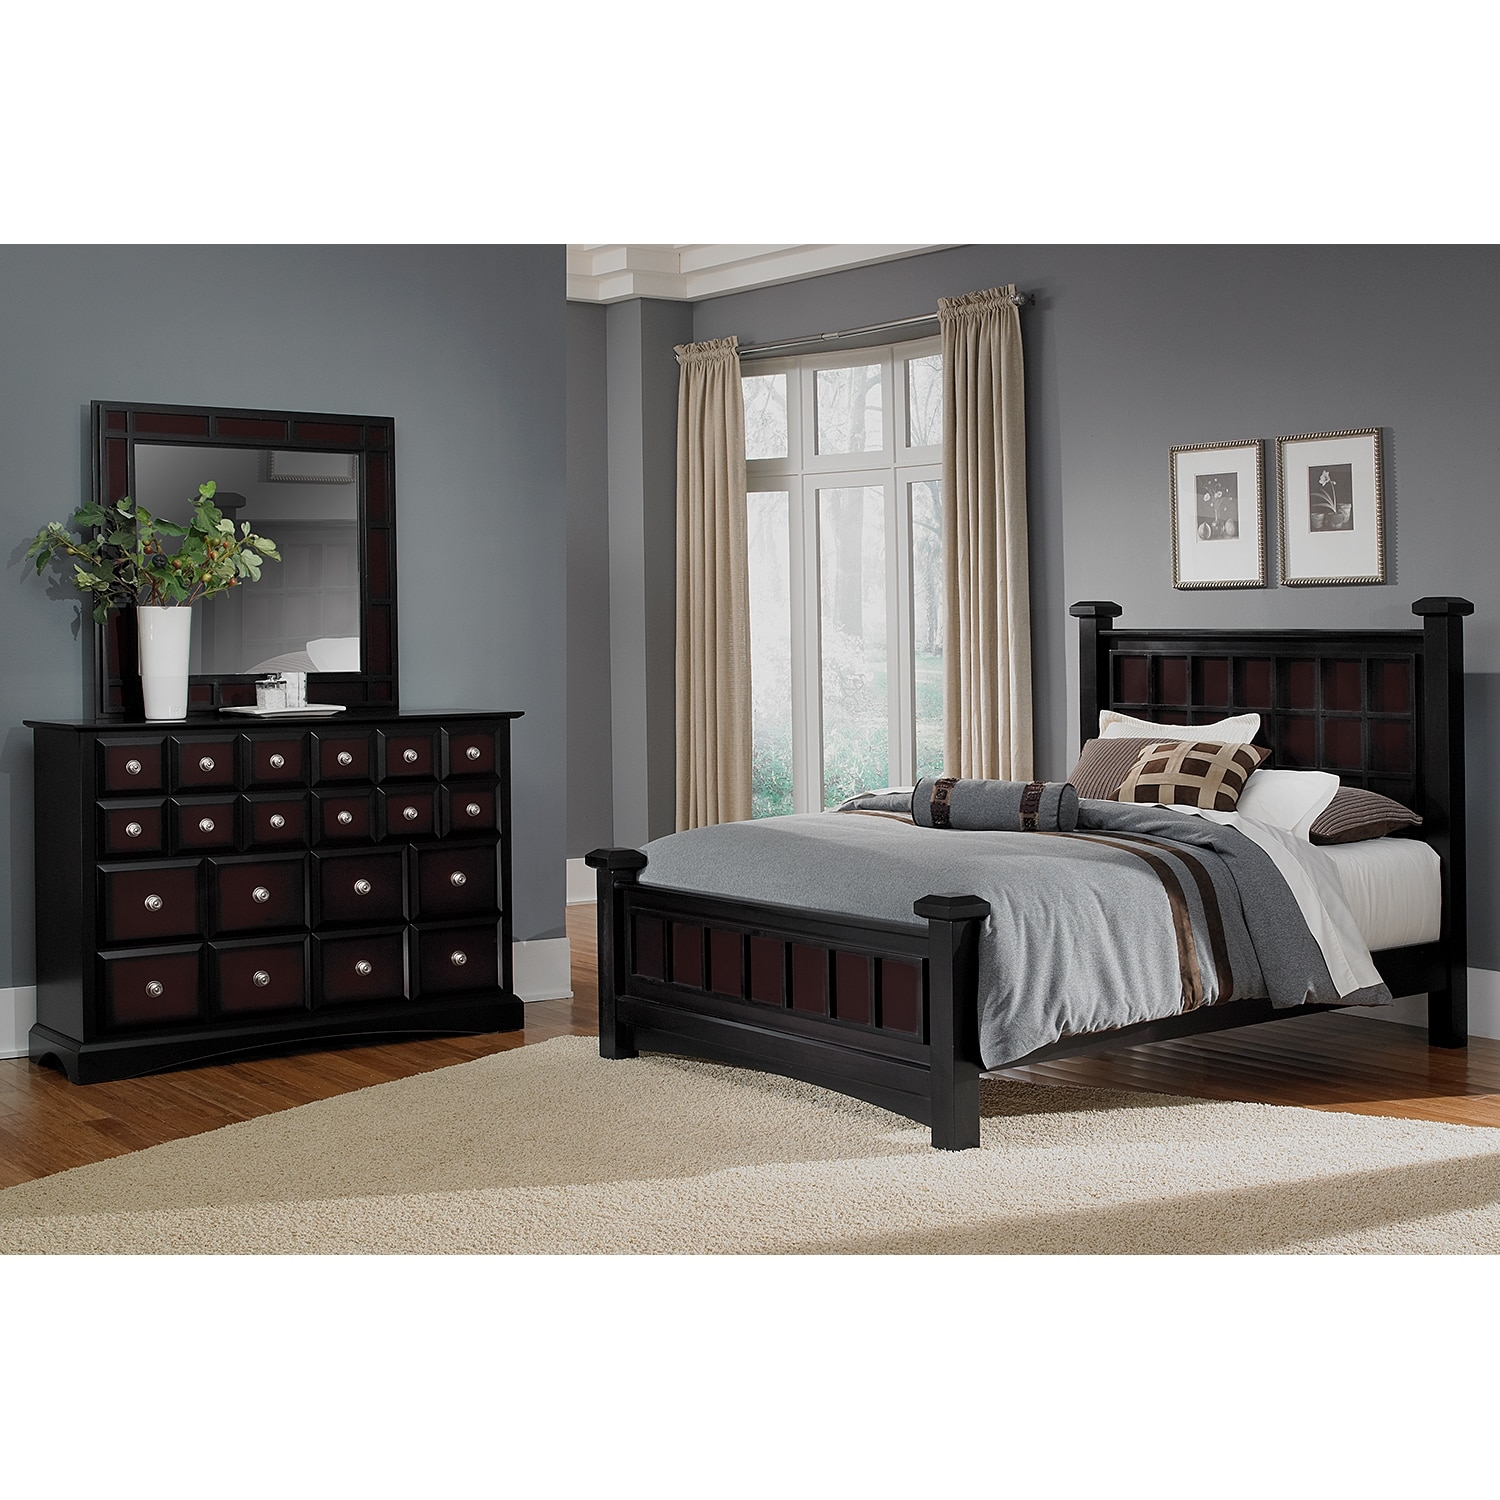 Winchester 5 pc king bedroom value city furniture for M bedroom furniture